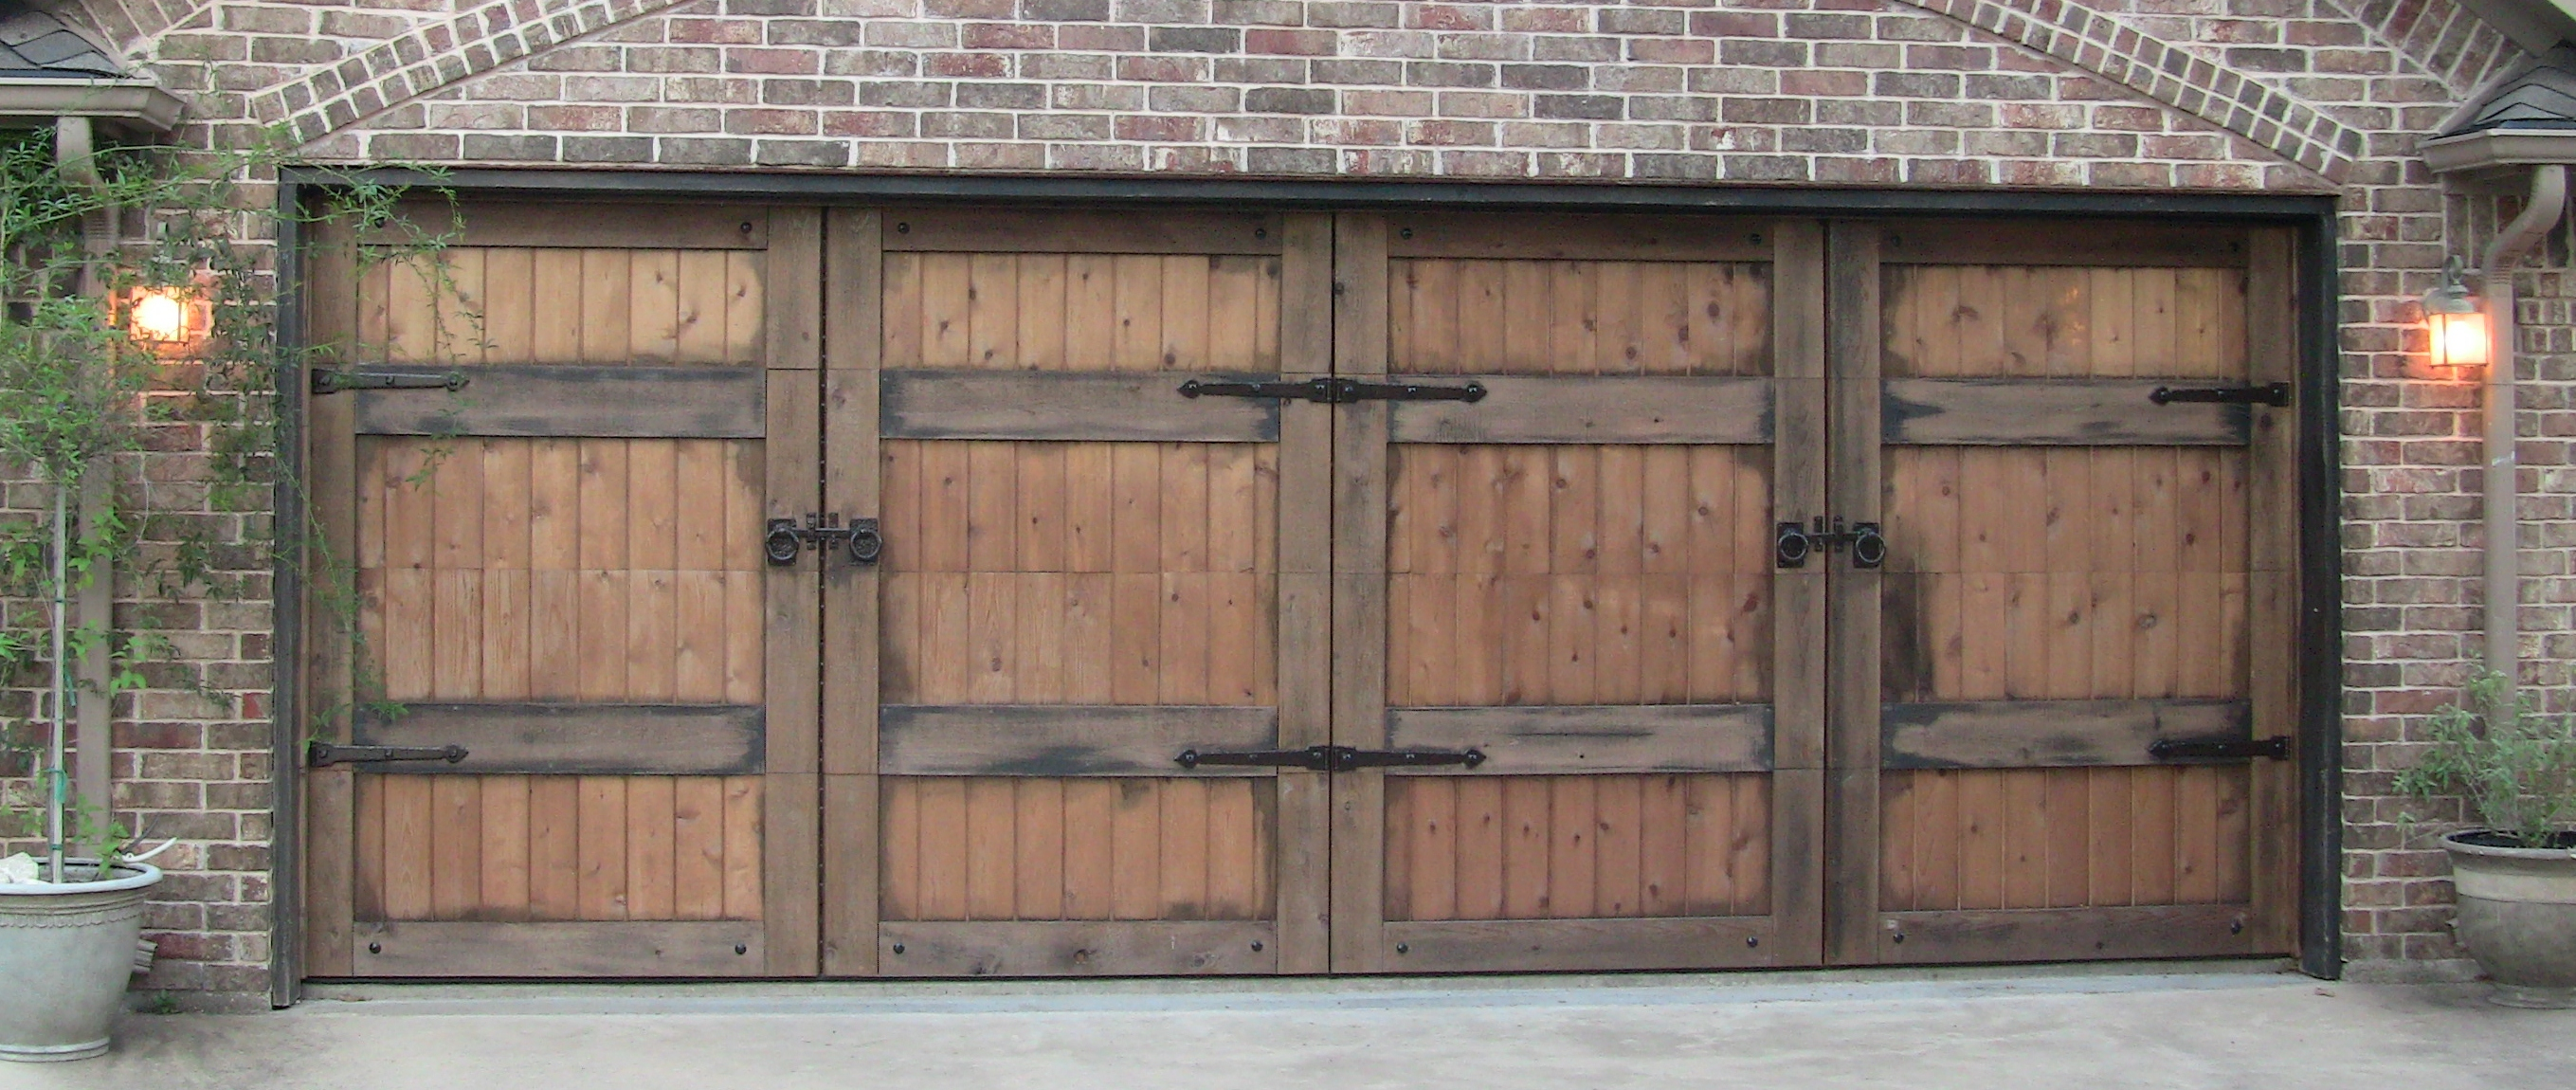 1150 #7F604C Cedar Clad Overhead Doors Will Steed Homes pic Clad Wood Doors 47212718